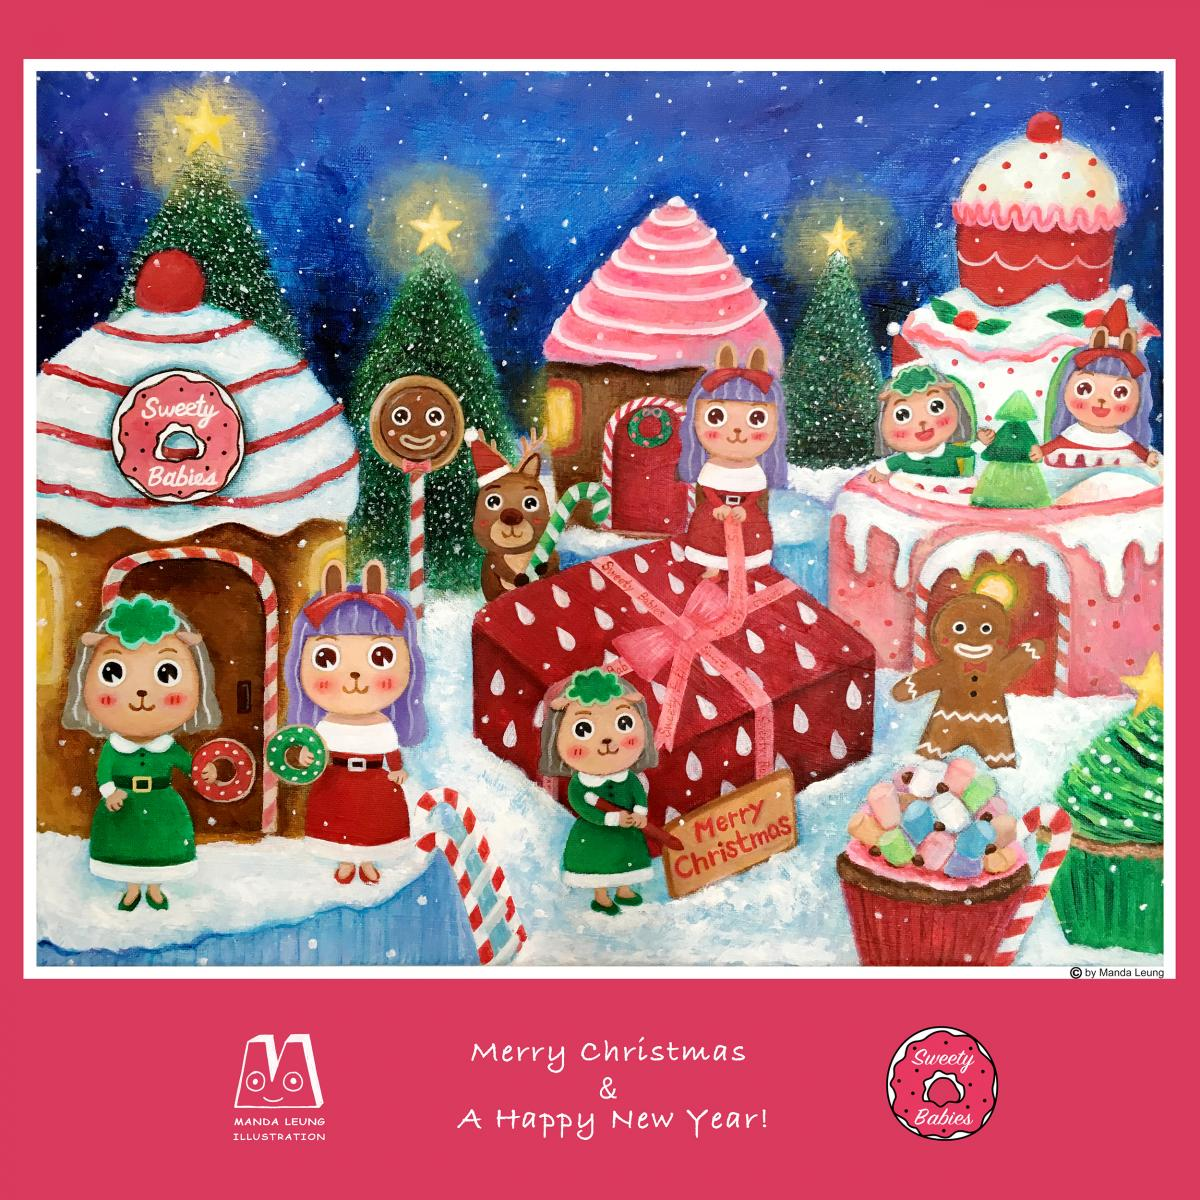 Sweety Babies (Dessert Journey - Christmas & New Year)